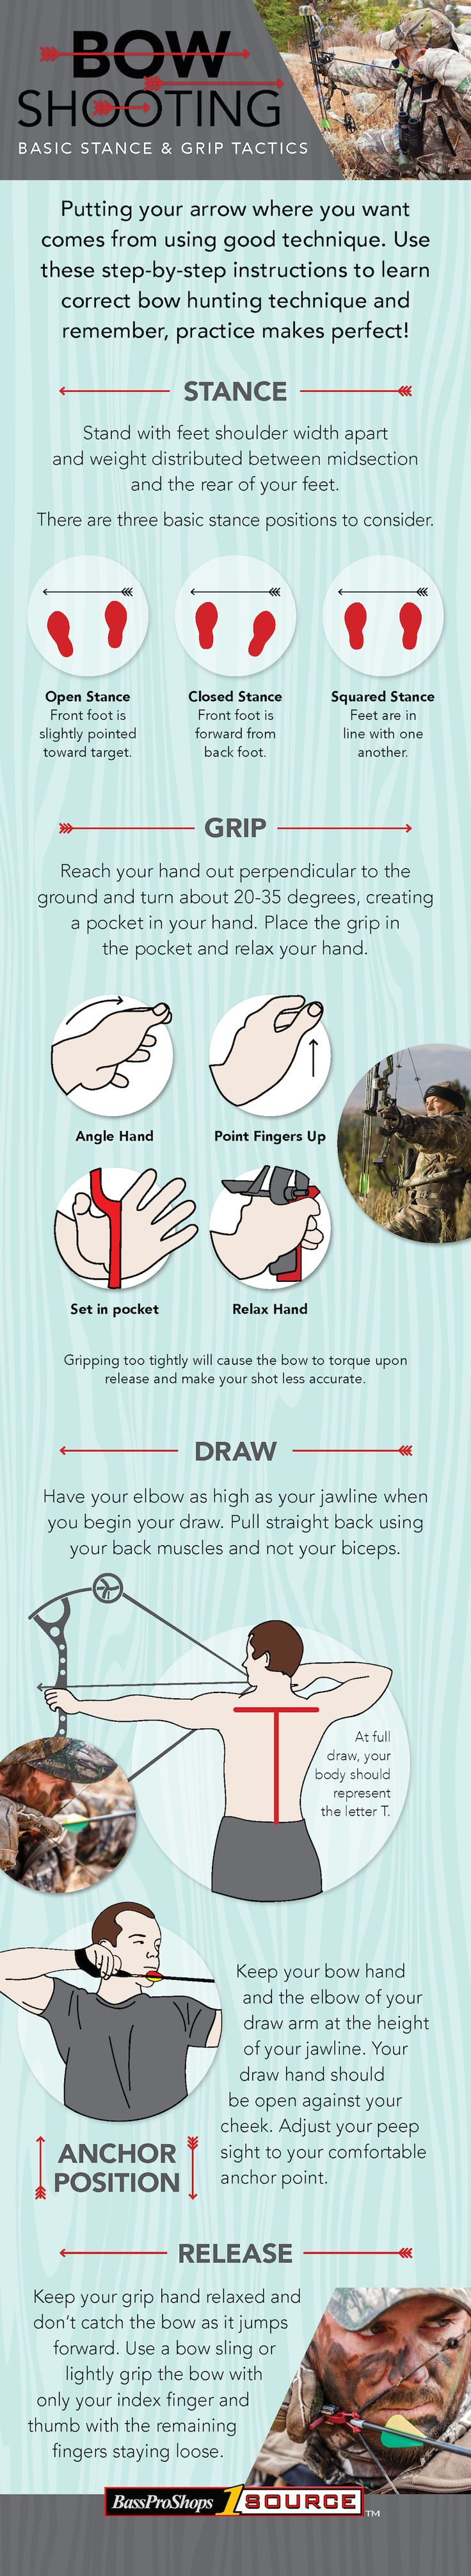 Bow Shooting basics infographic